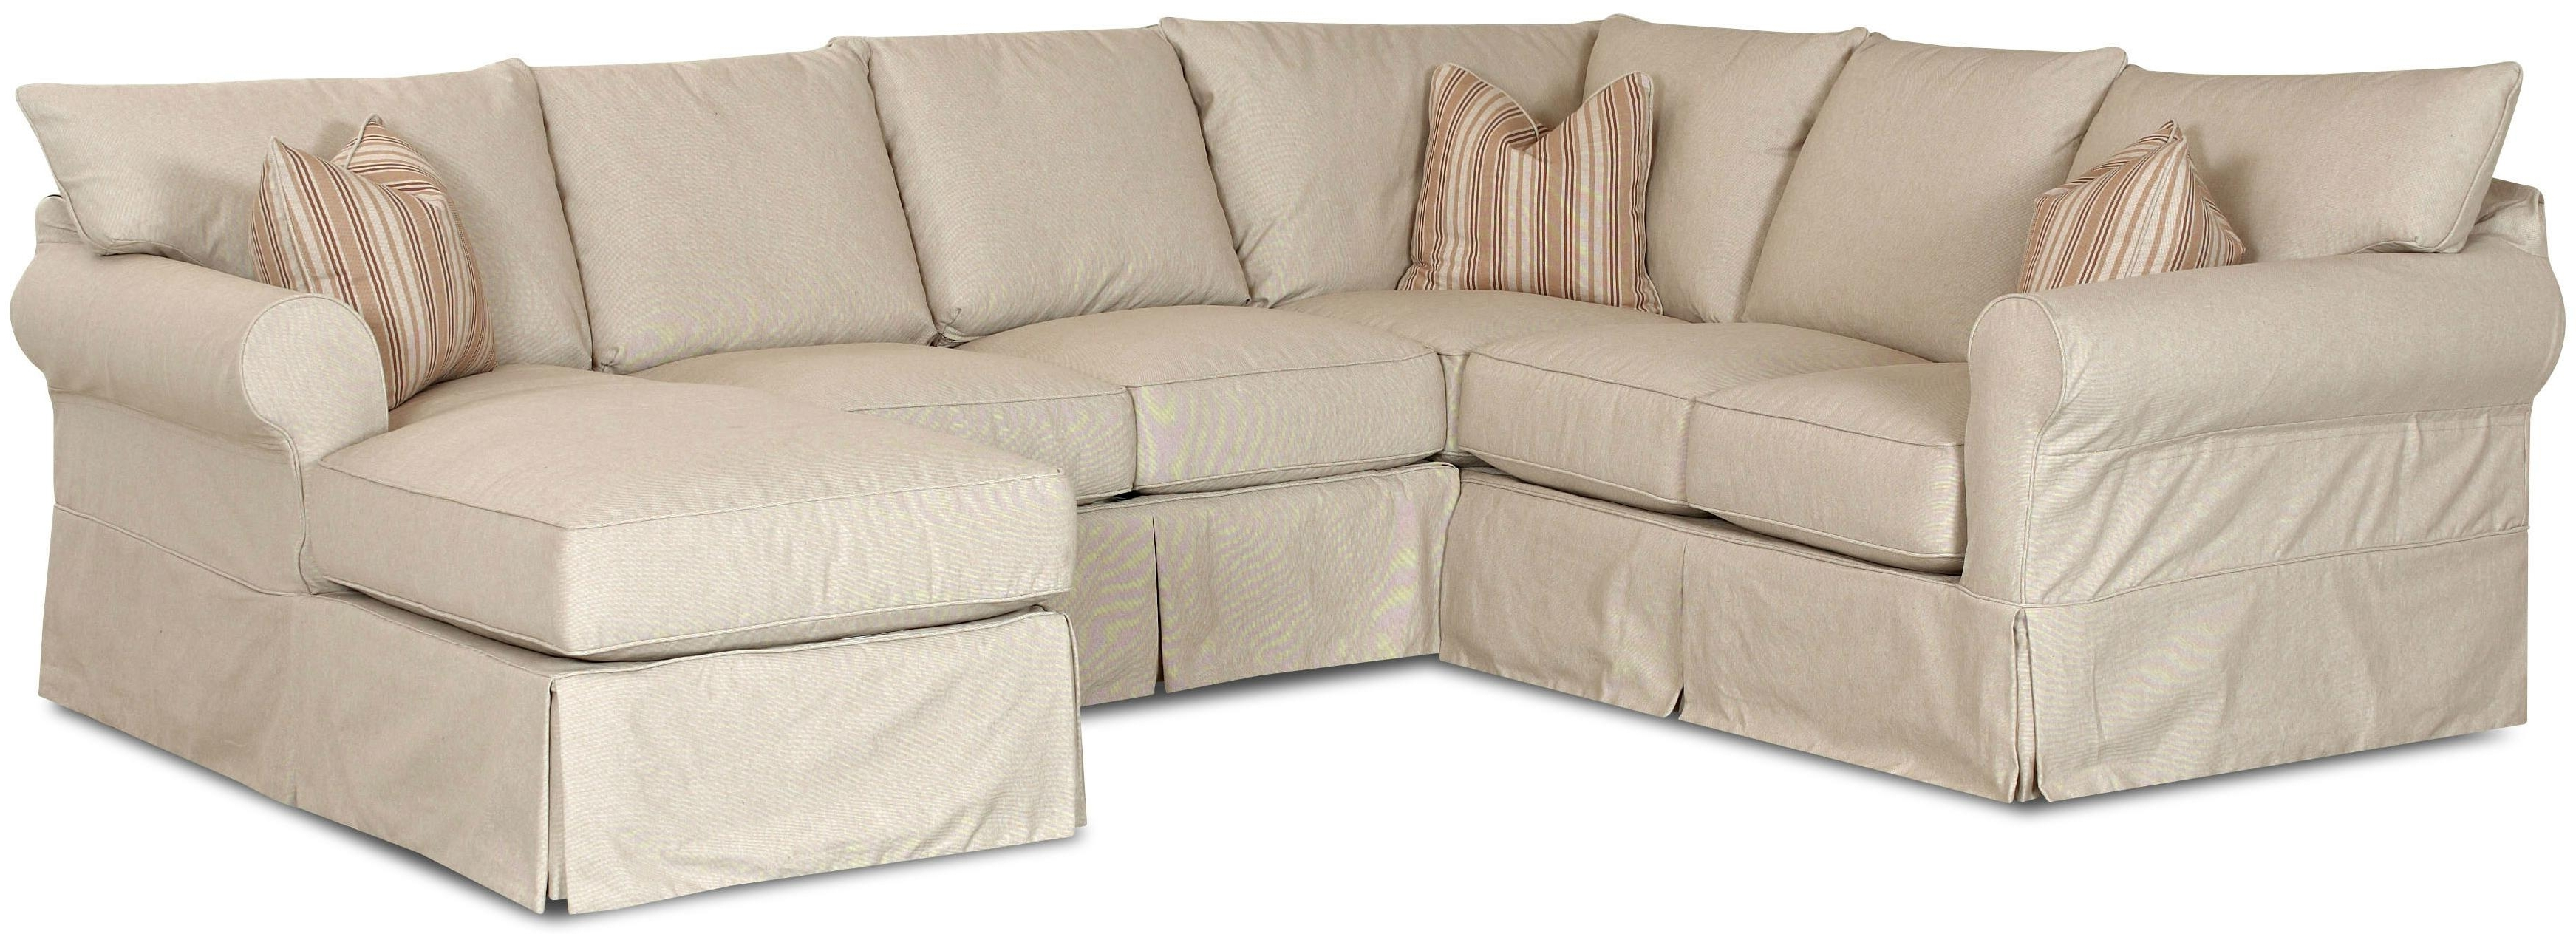 Most Current Furniture: White Couch Slipcovers Target For Home Furniture Ideas Inside Target Sectional Sofas (Gallery 10 of 20)